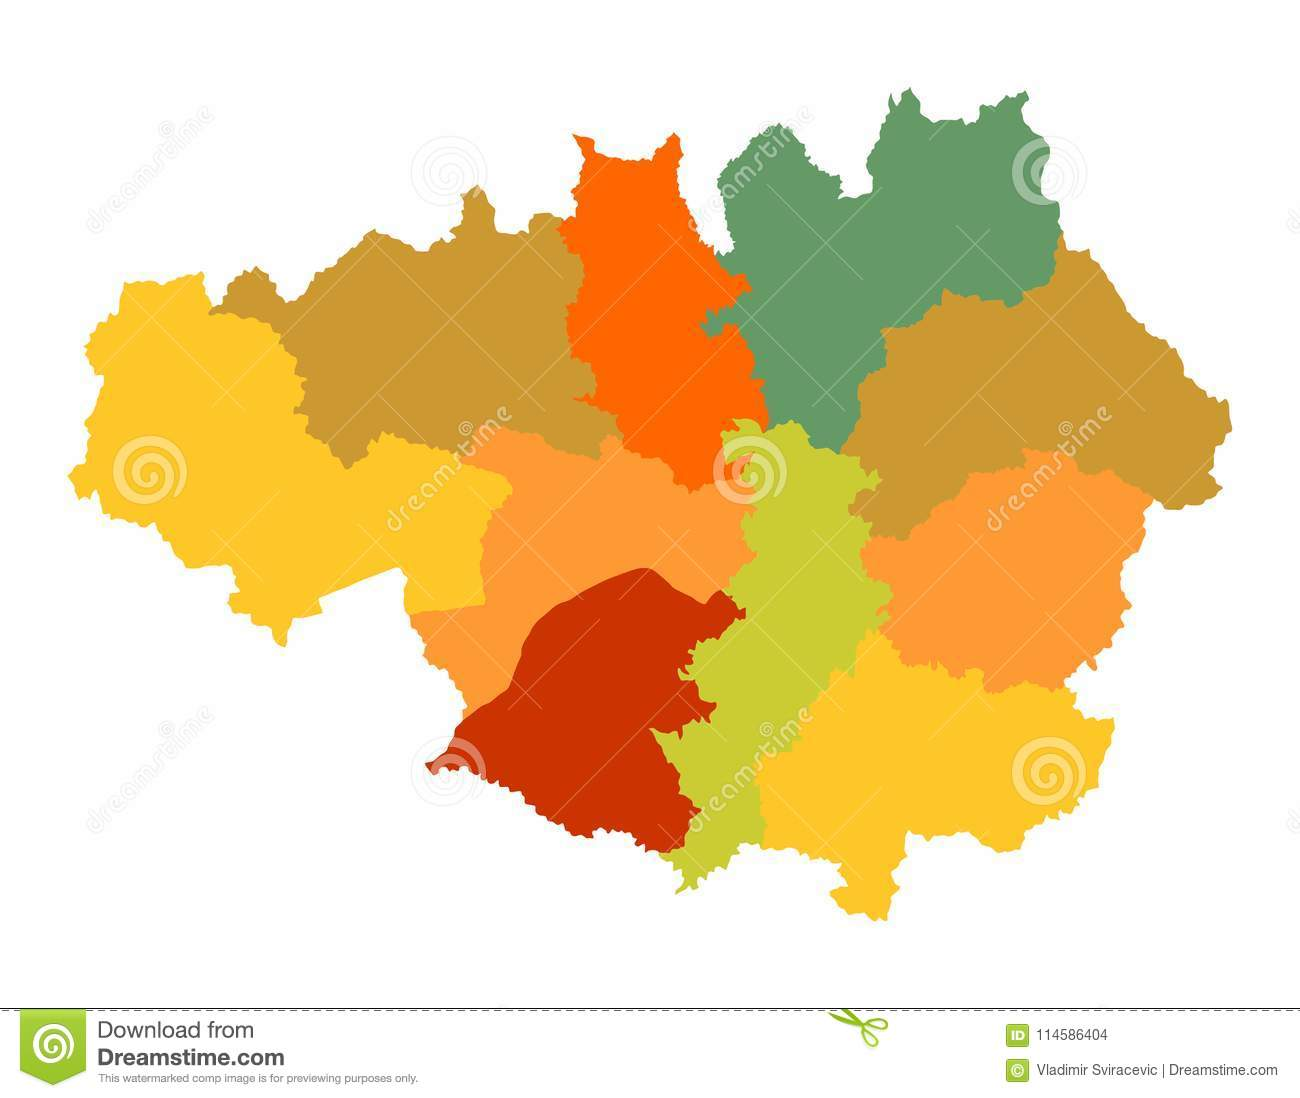 Manchester World Map.Vector Silhouette Map Of Greater Manchester In North West England